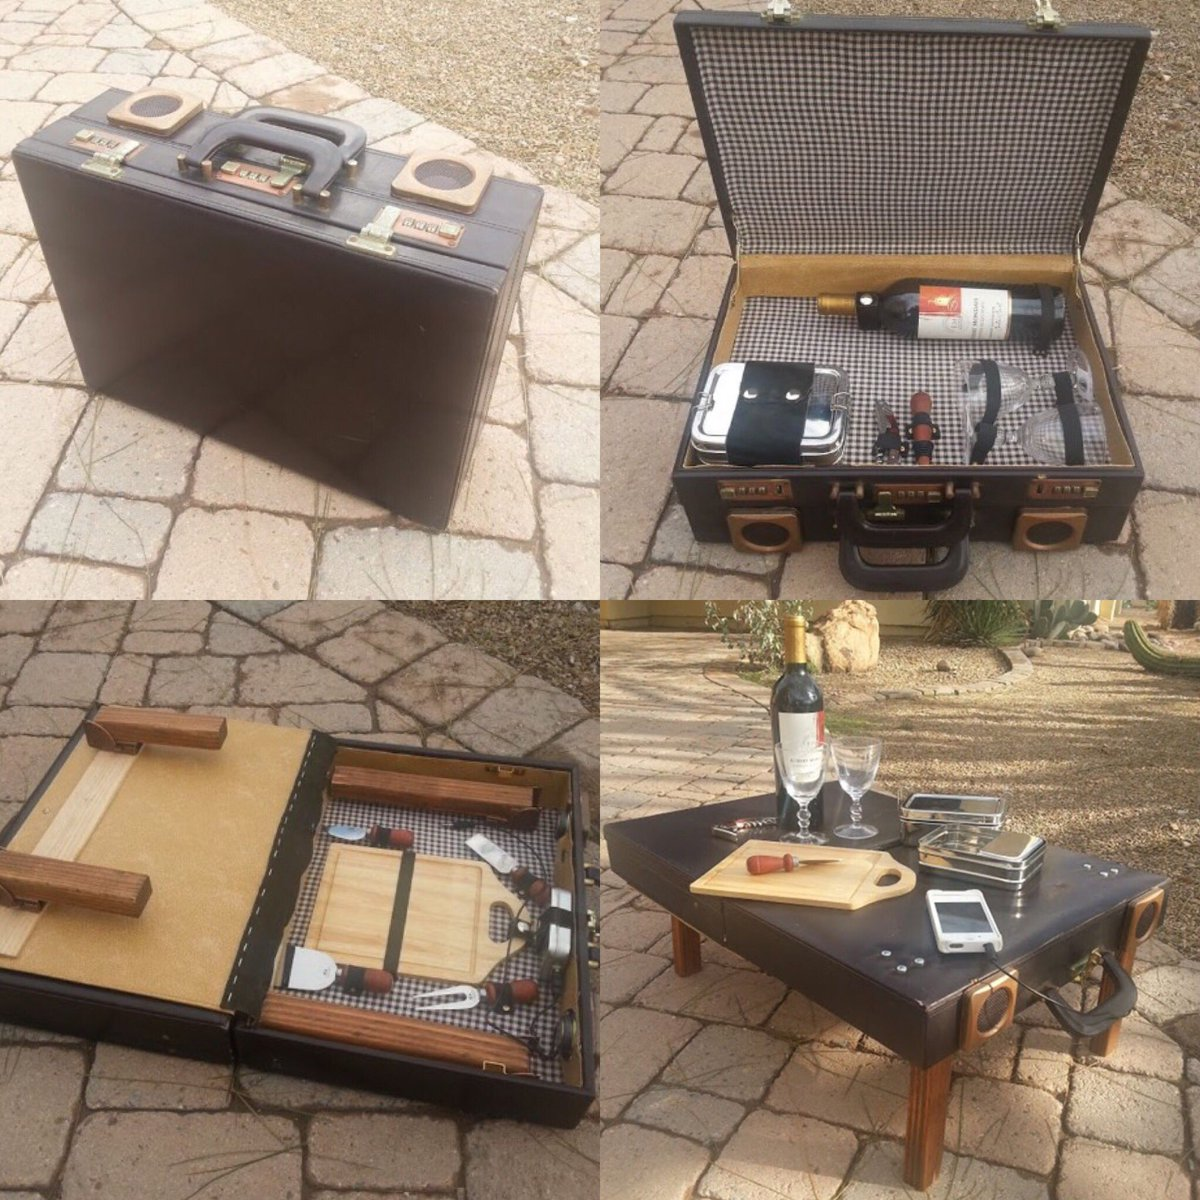 How #cool is this #repurposed #briefcase ?  . . . #picnic #wine #food @MacCocktail @winewankers @LoriMoreno @JMiquelWine @MrScottEddy <br>http://pic.twitter.com/ArA17osqJW